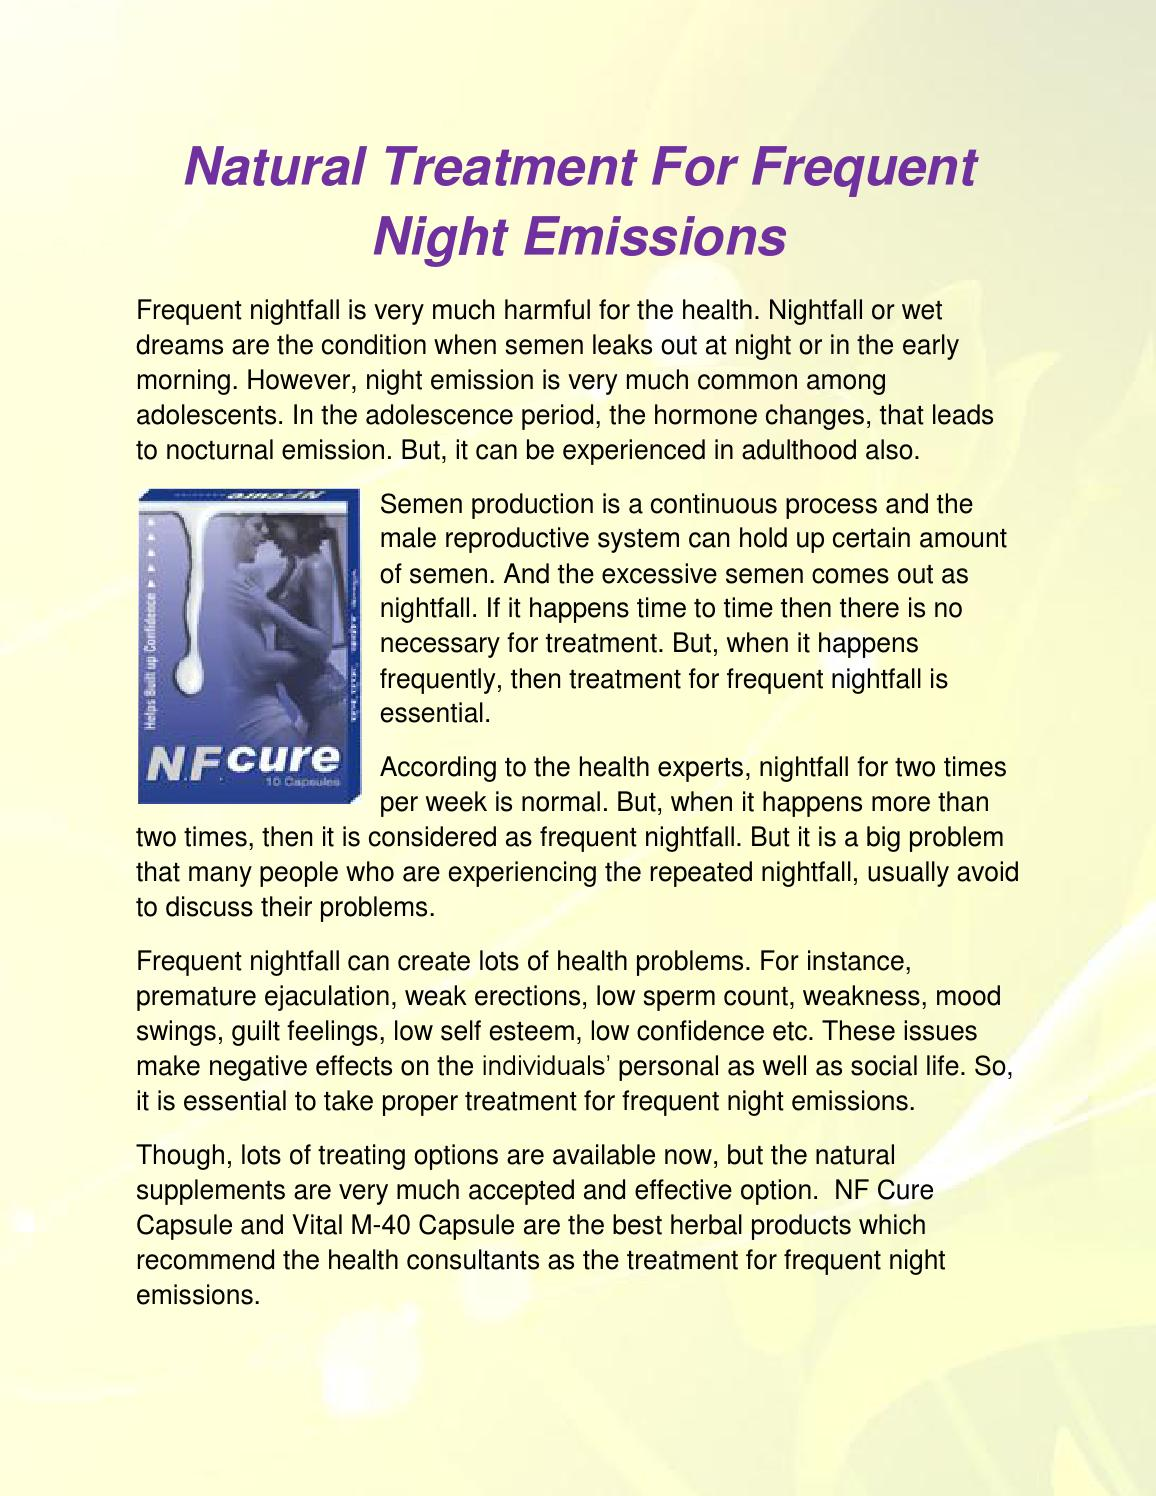 Natural Treatment For Frequent Night Emissions By Maarten -5518